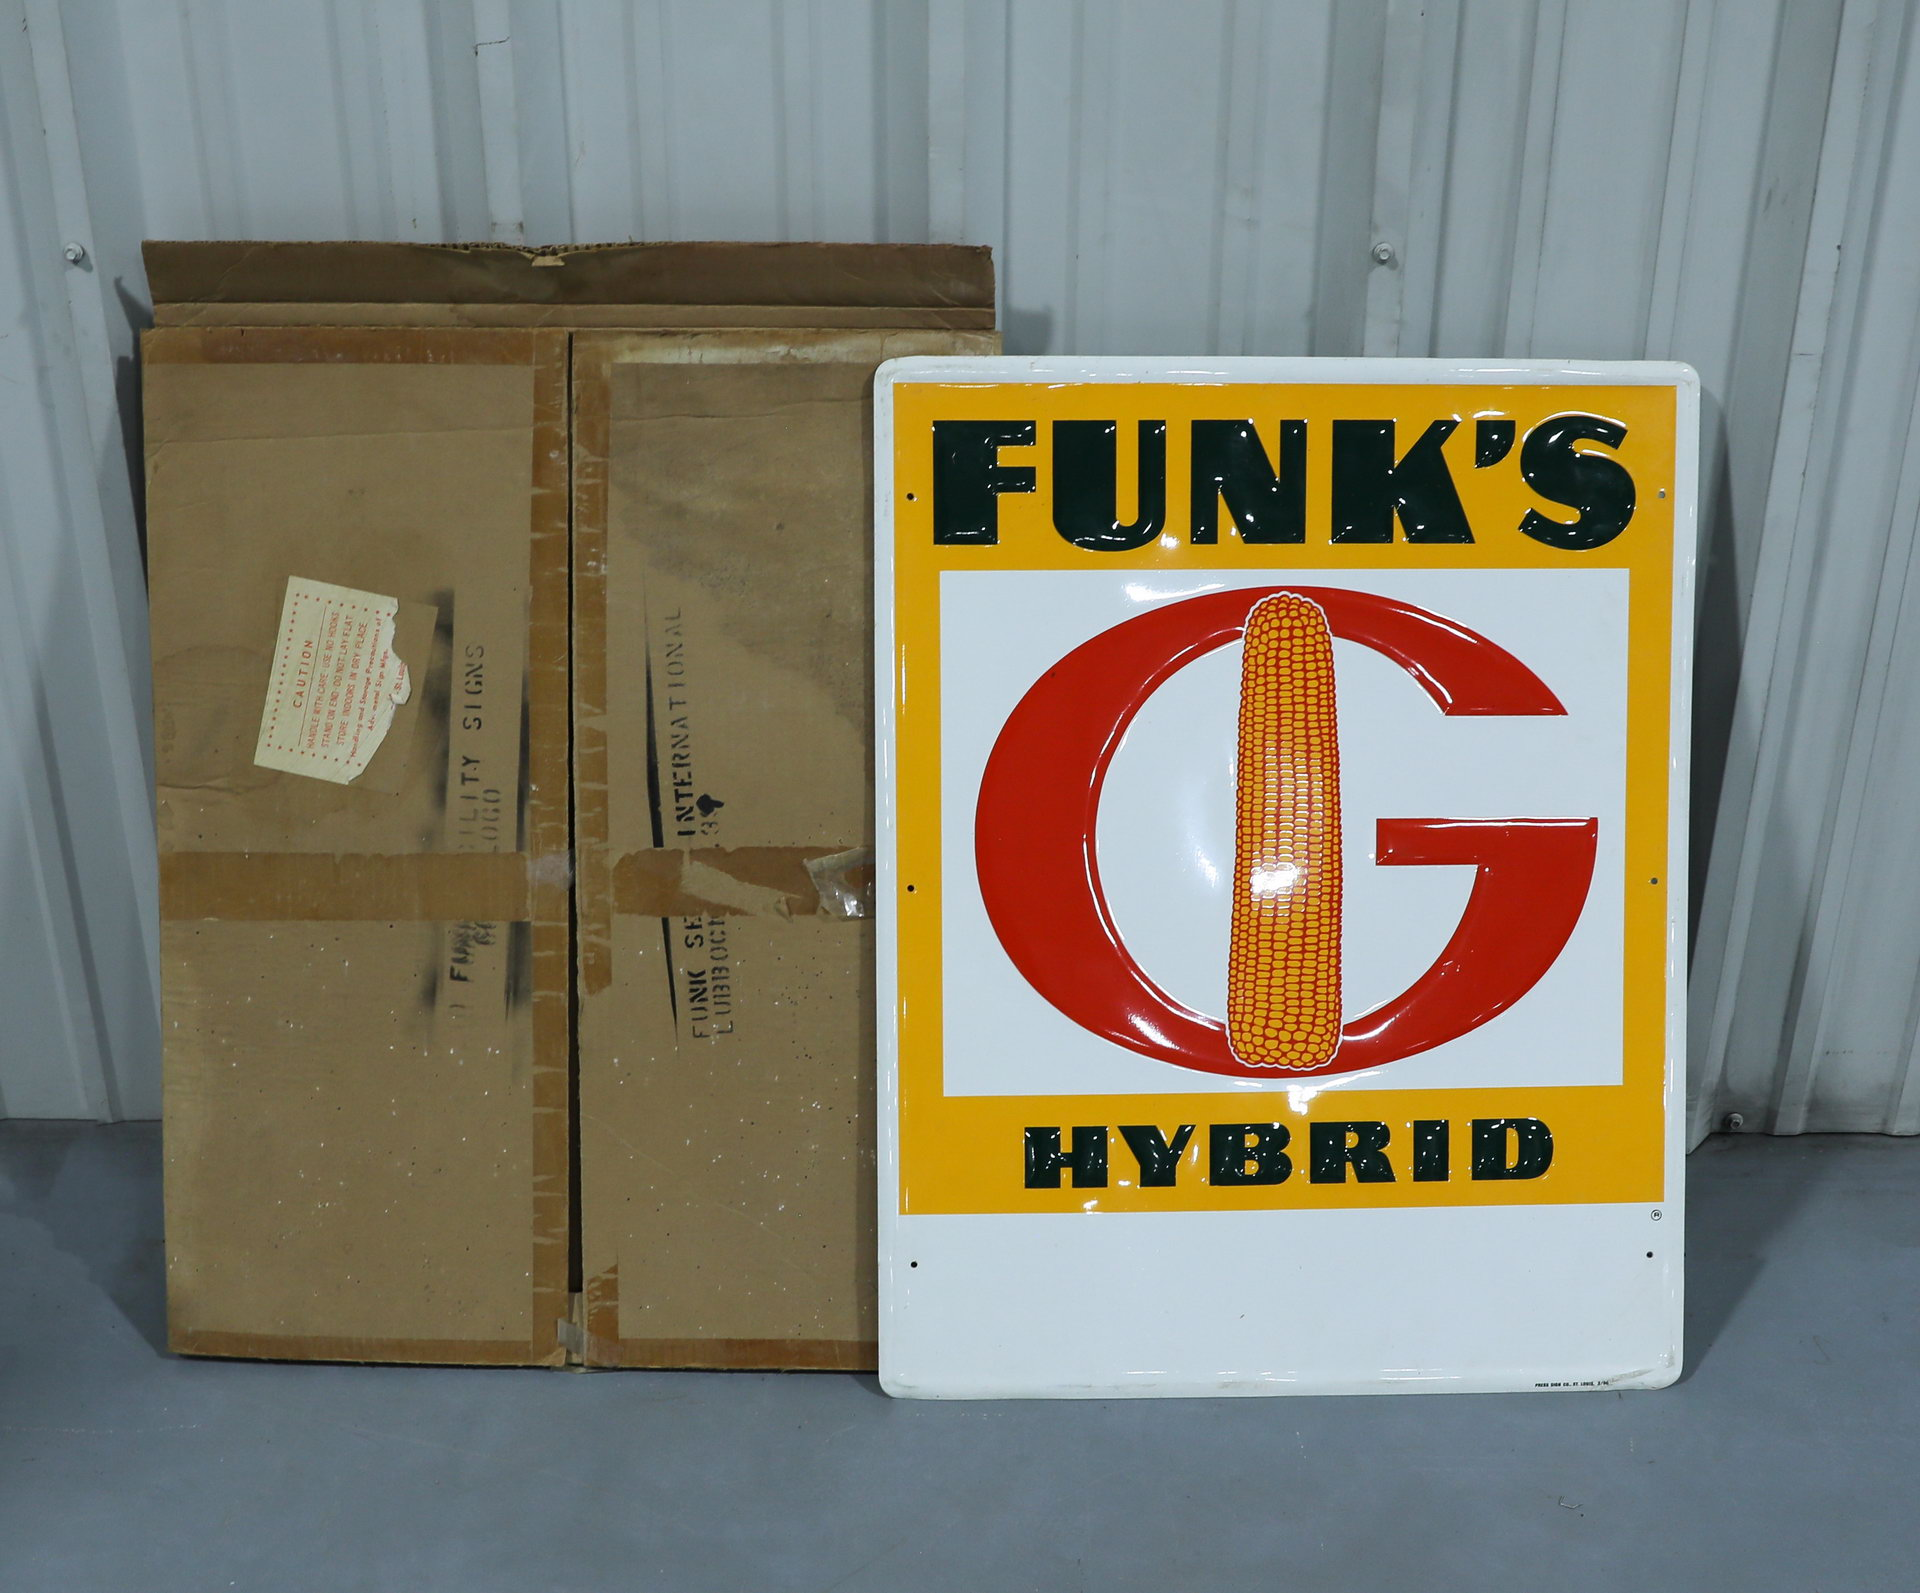 Funk's Hybrid Tin Advertising Sign with Original Box